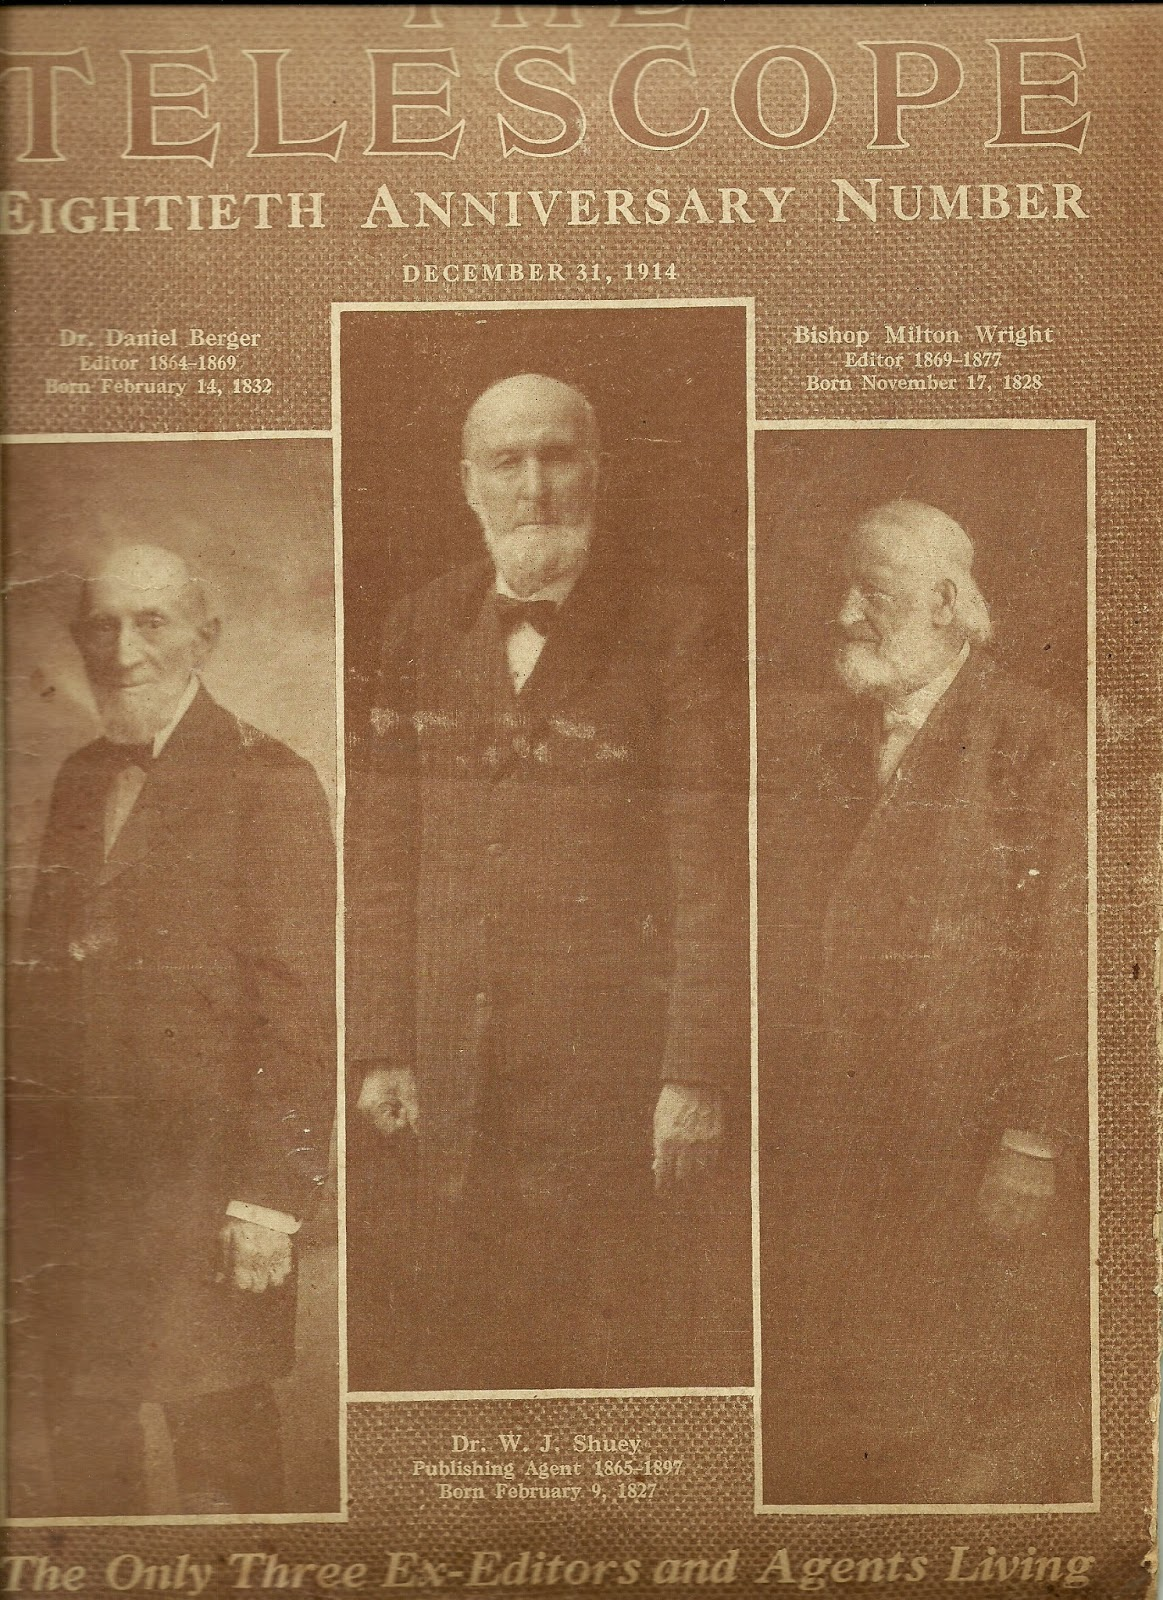 Bishop Milton Wright, father of Wilbur and Orville Wright